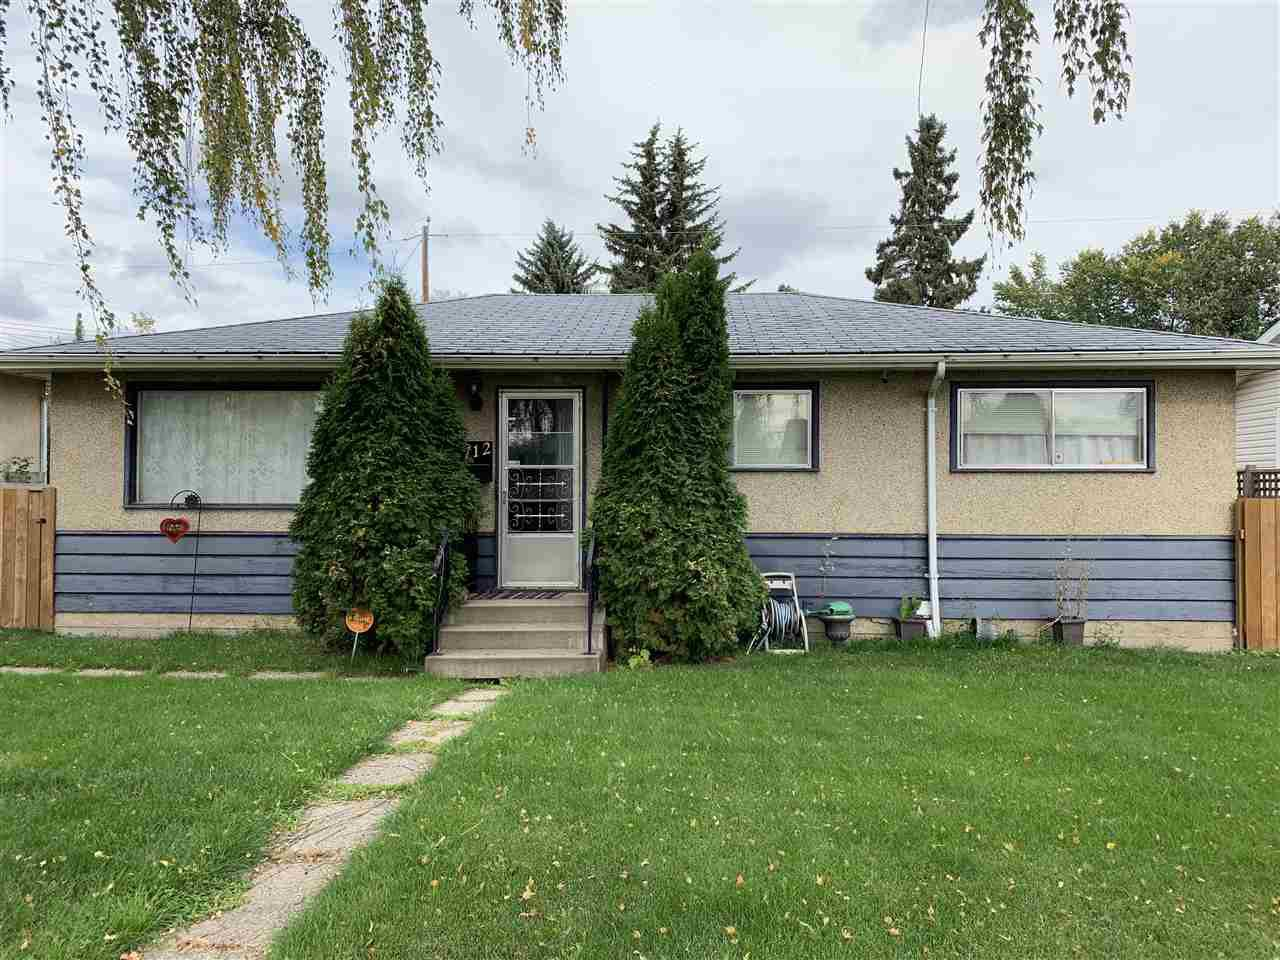 Main Photo: 4712 103 Avenue in Edmonton: Zone 19 House for sale : MLS®# E4173871